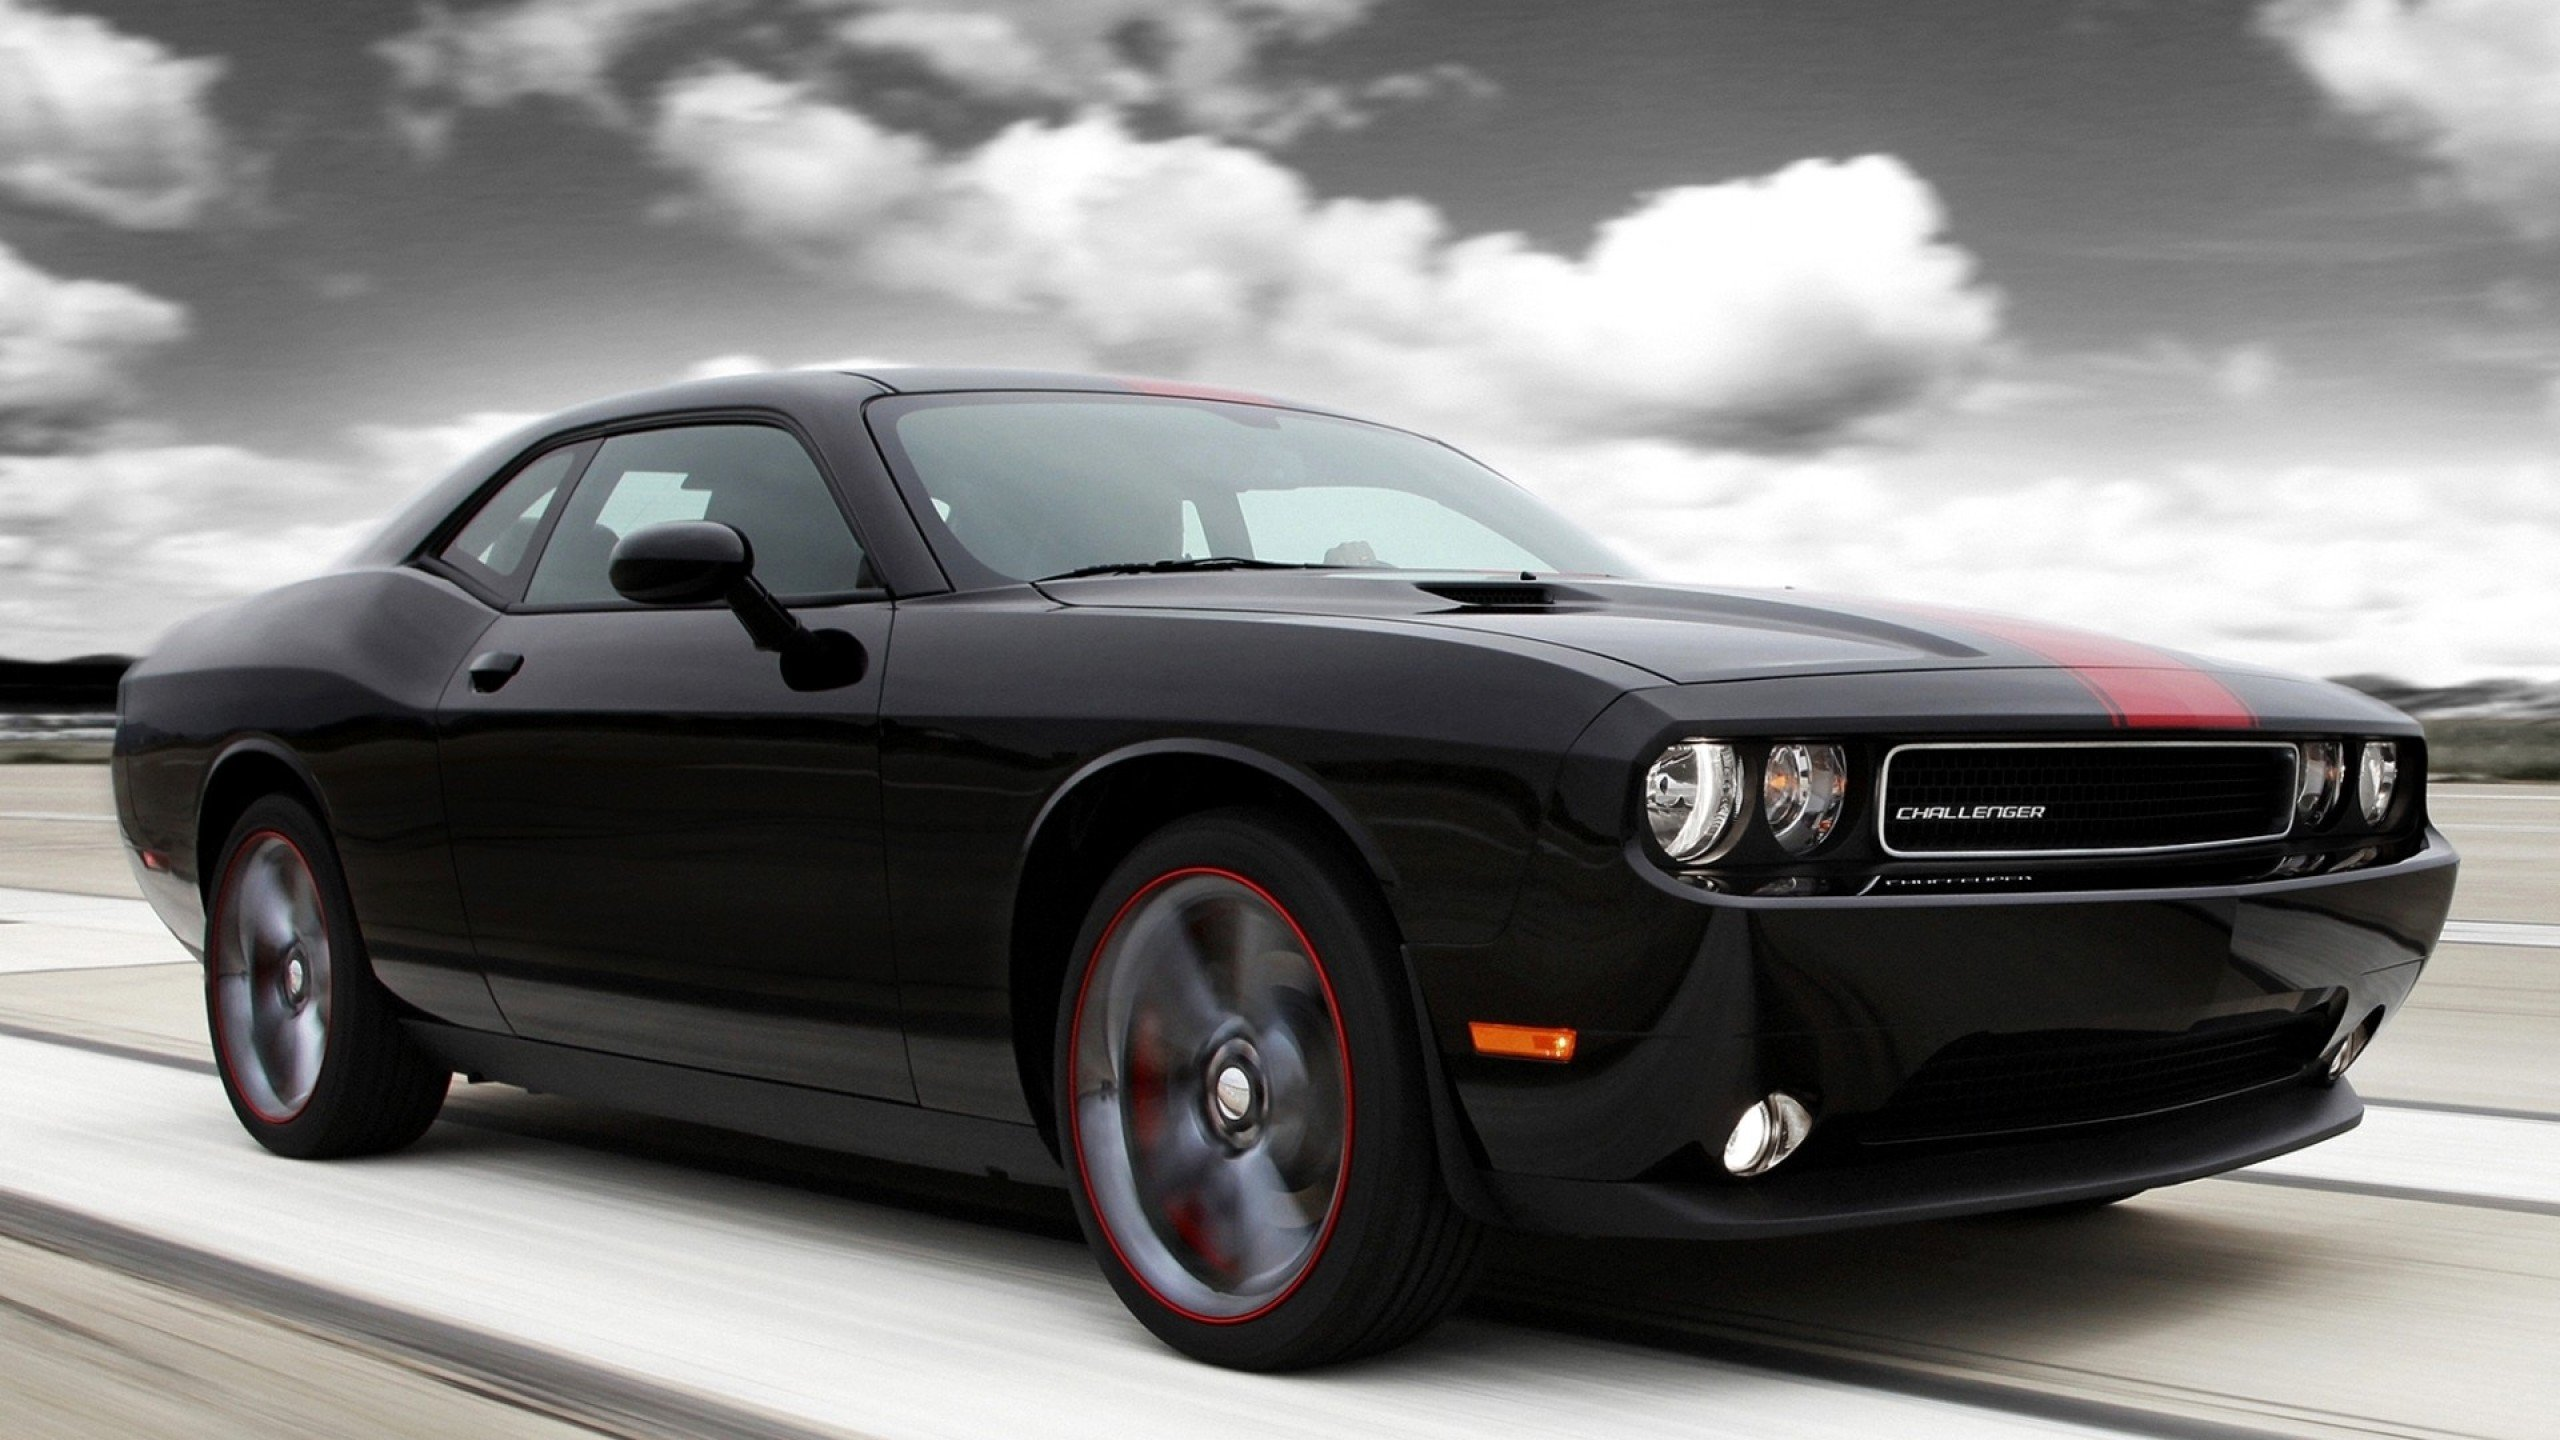 2560x1440 - Dodge Challenger Rallye Wallpapers 19